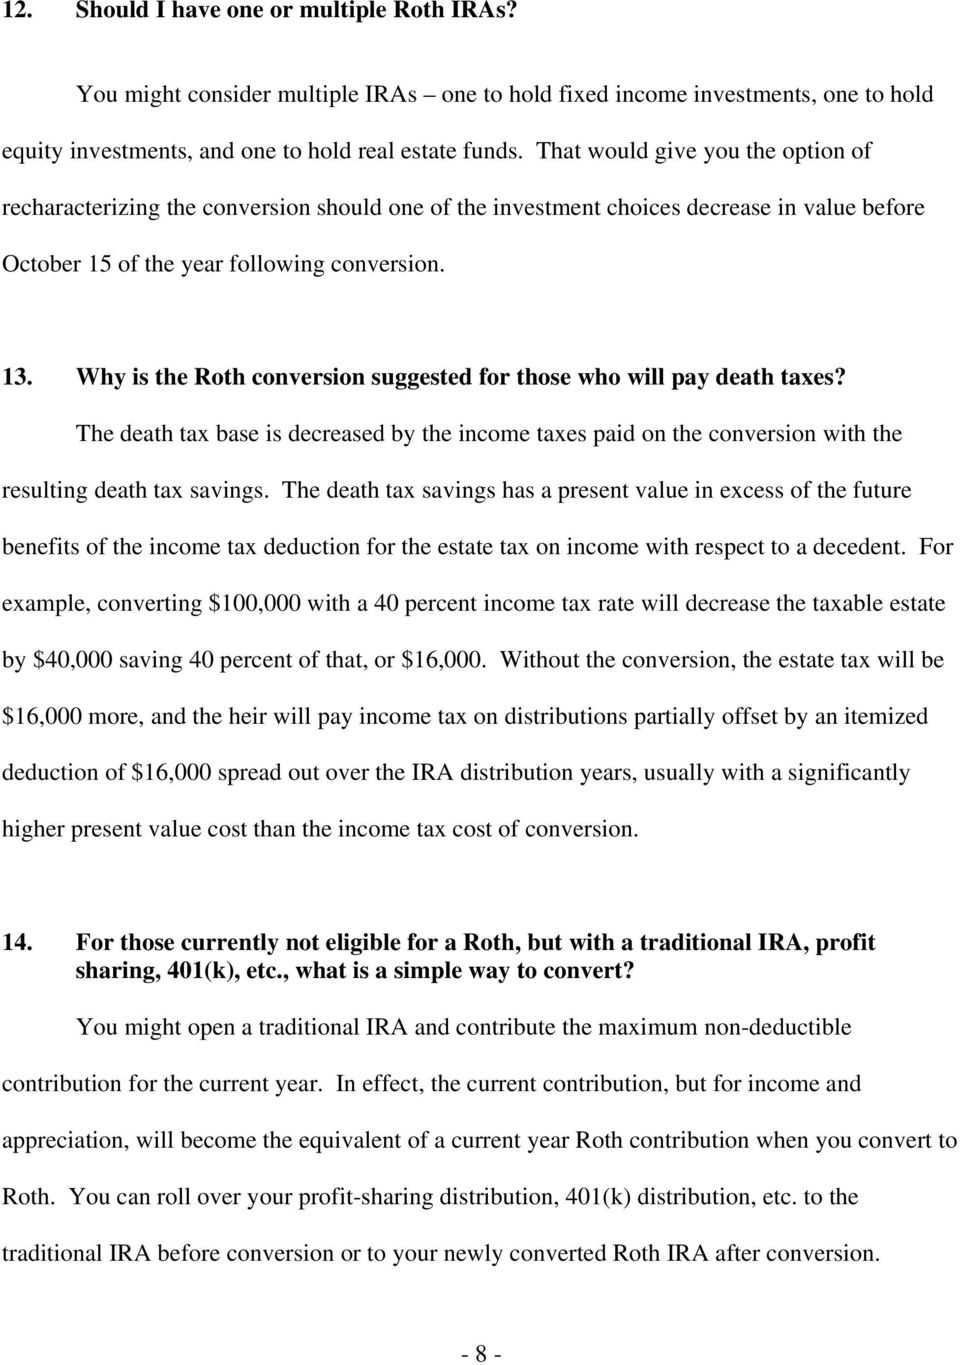 Why is the Roth conversion suggested for those who will pay death taxes? The death tax base is decreased by the income taxes paid on the conversion with the resulting death tax savings.